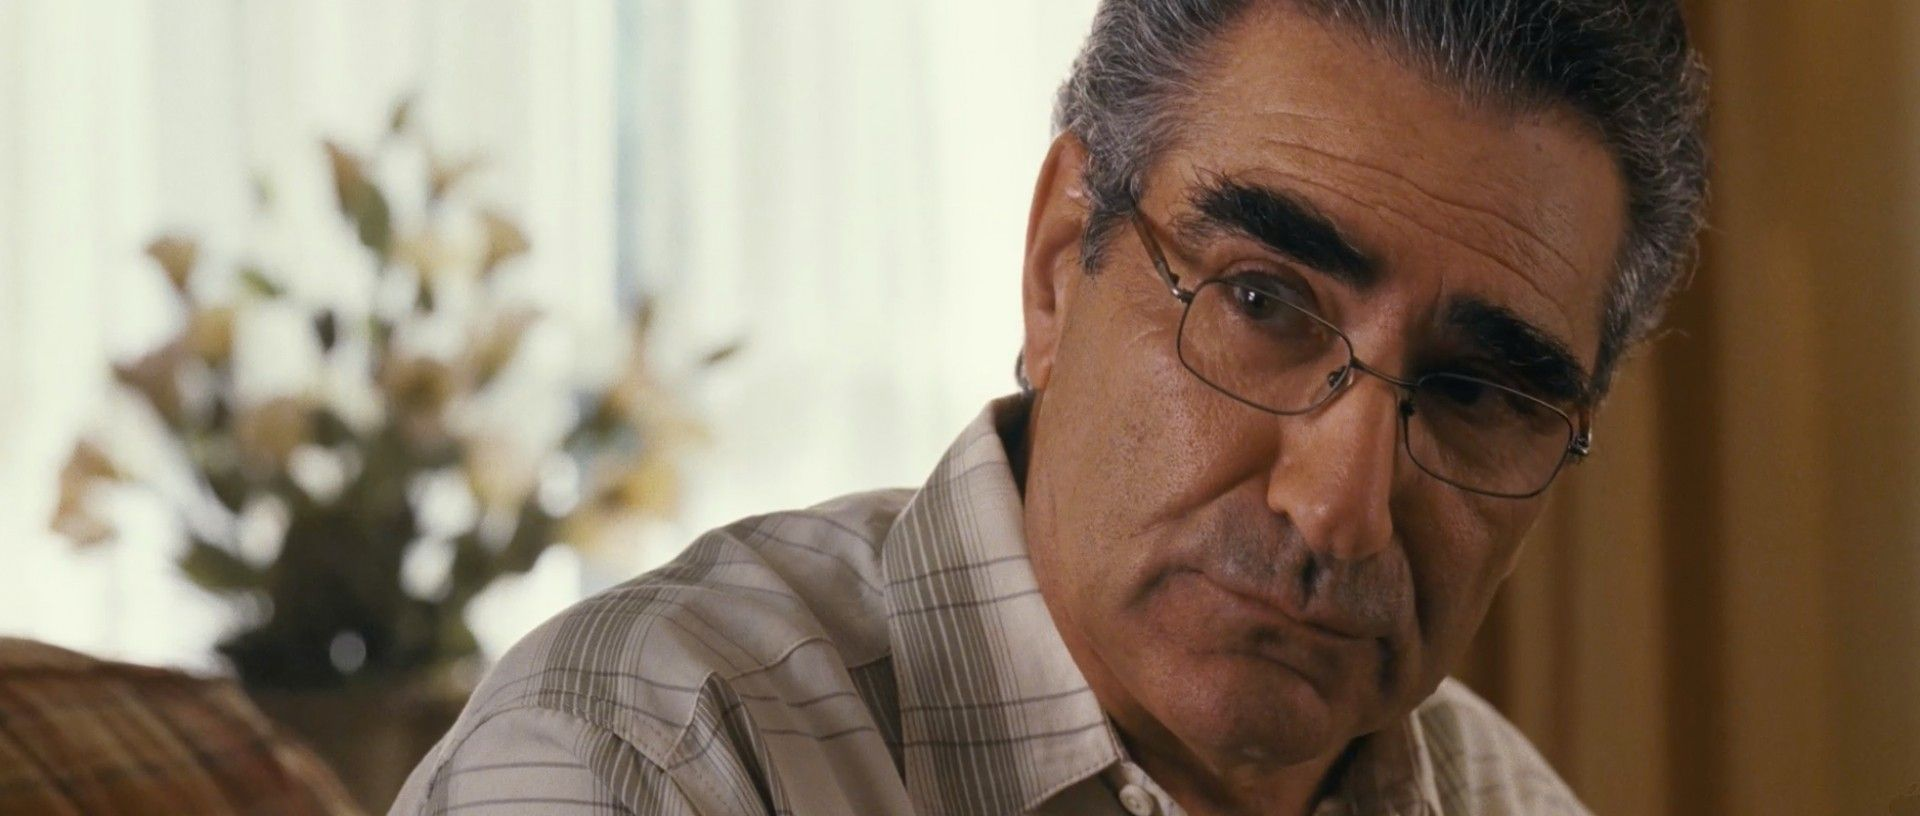 American Reunion Hot Scene eugene levy as jim's dad in american (pie) reunion